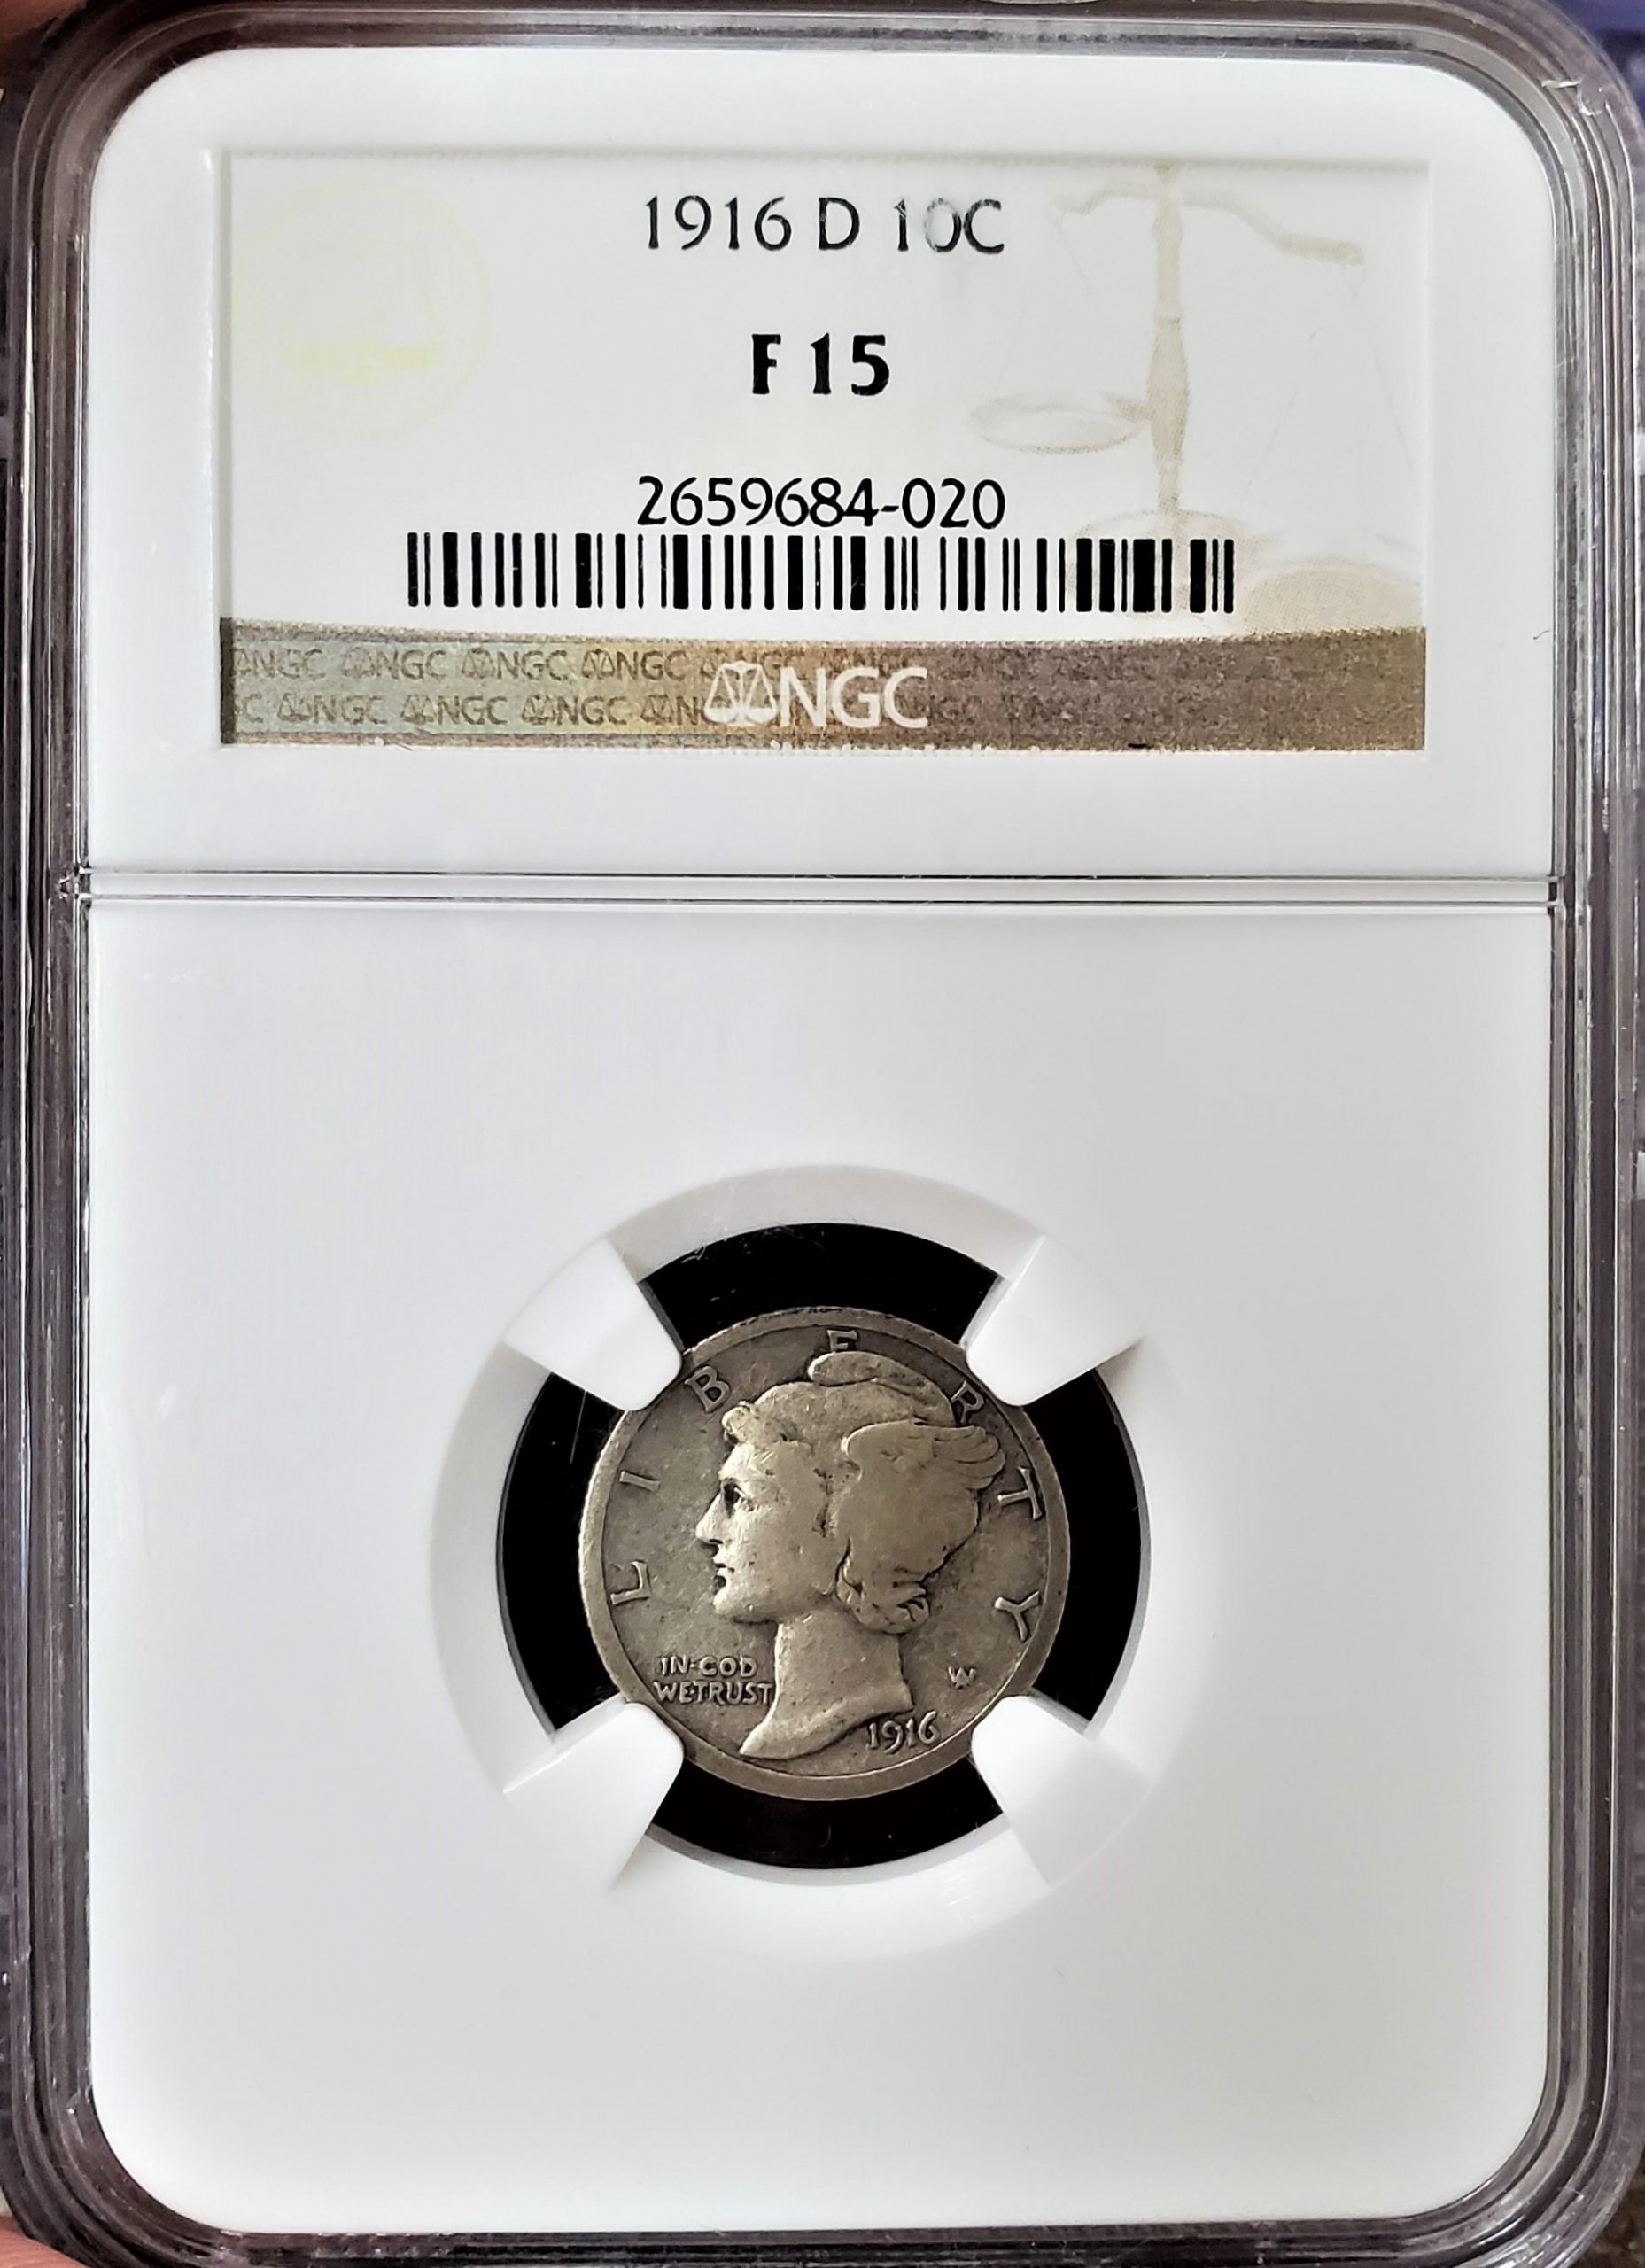 HUDSON COINS BUYS GRADED COINS